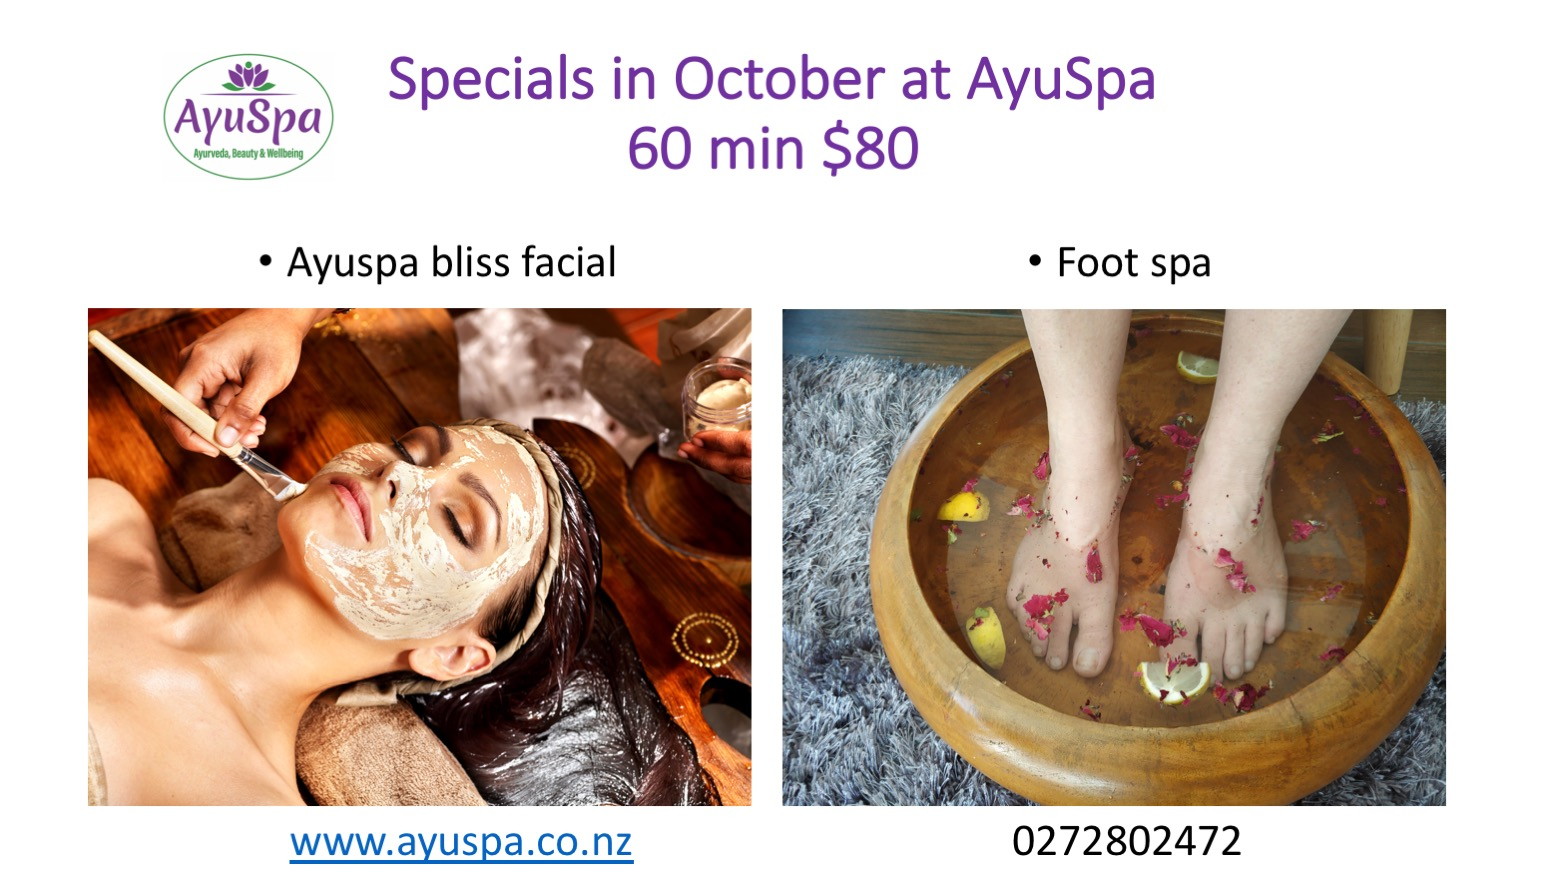 Ayuspa specials in October